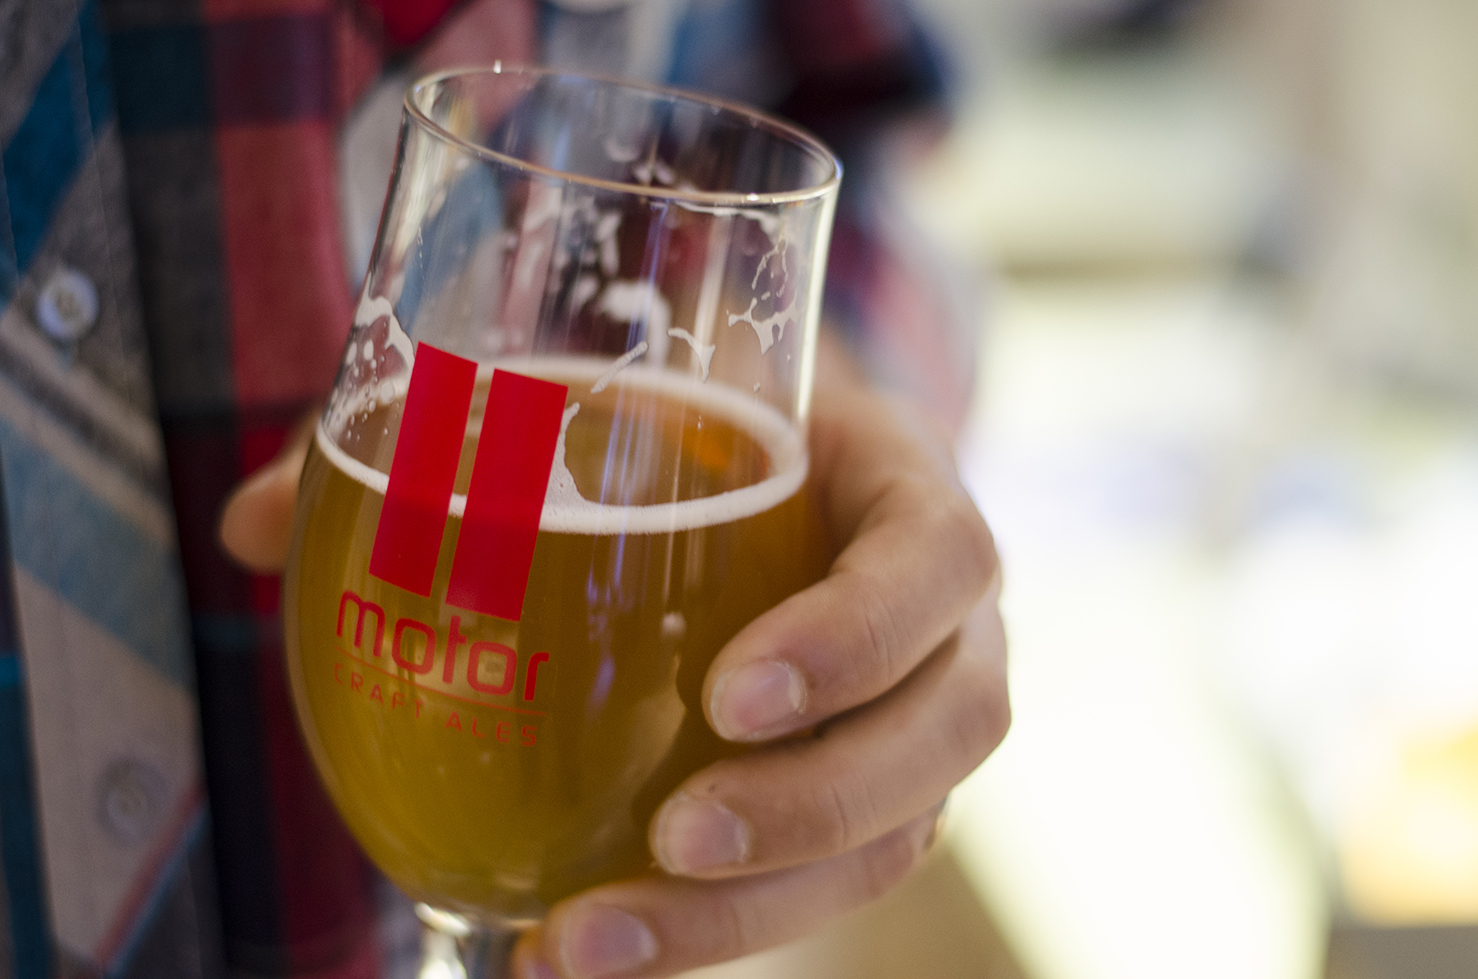 Now you can take motor craft ales home with you windsoreats for Craft beer tour london